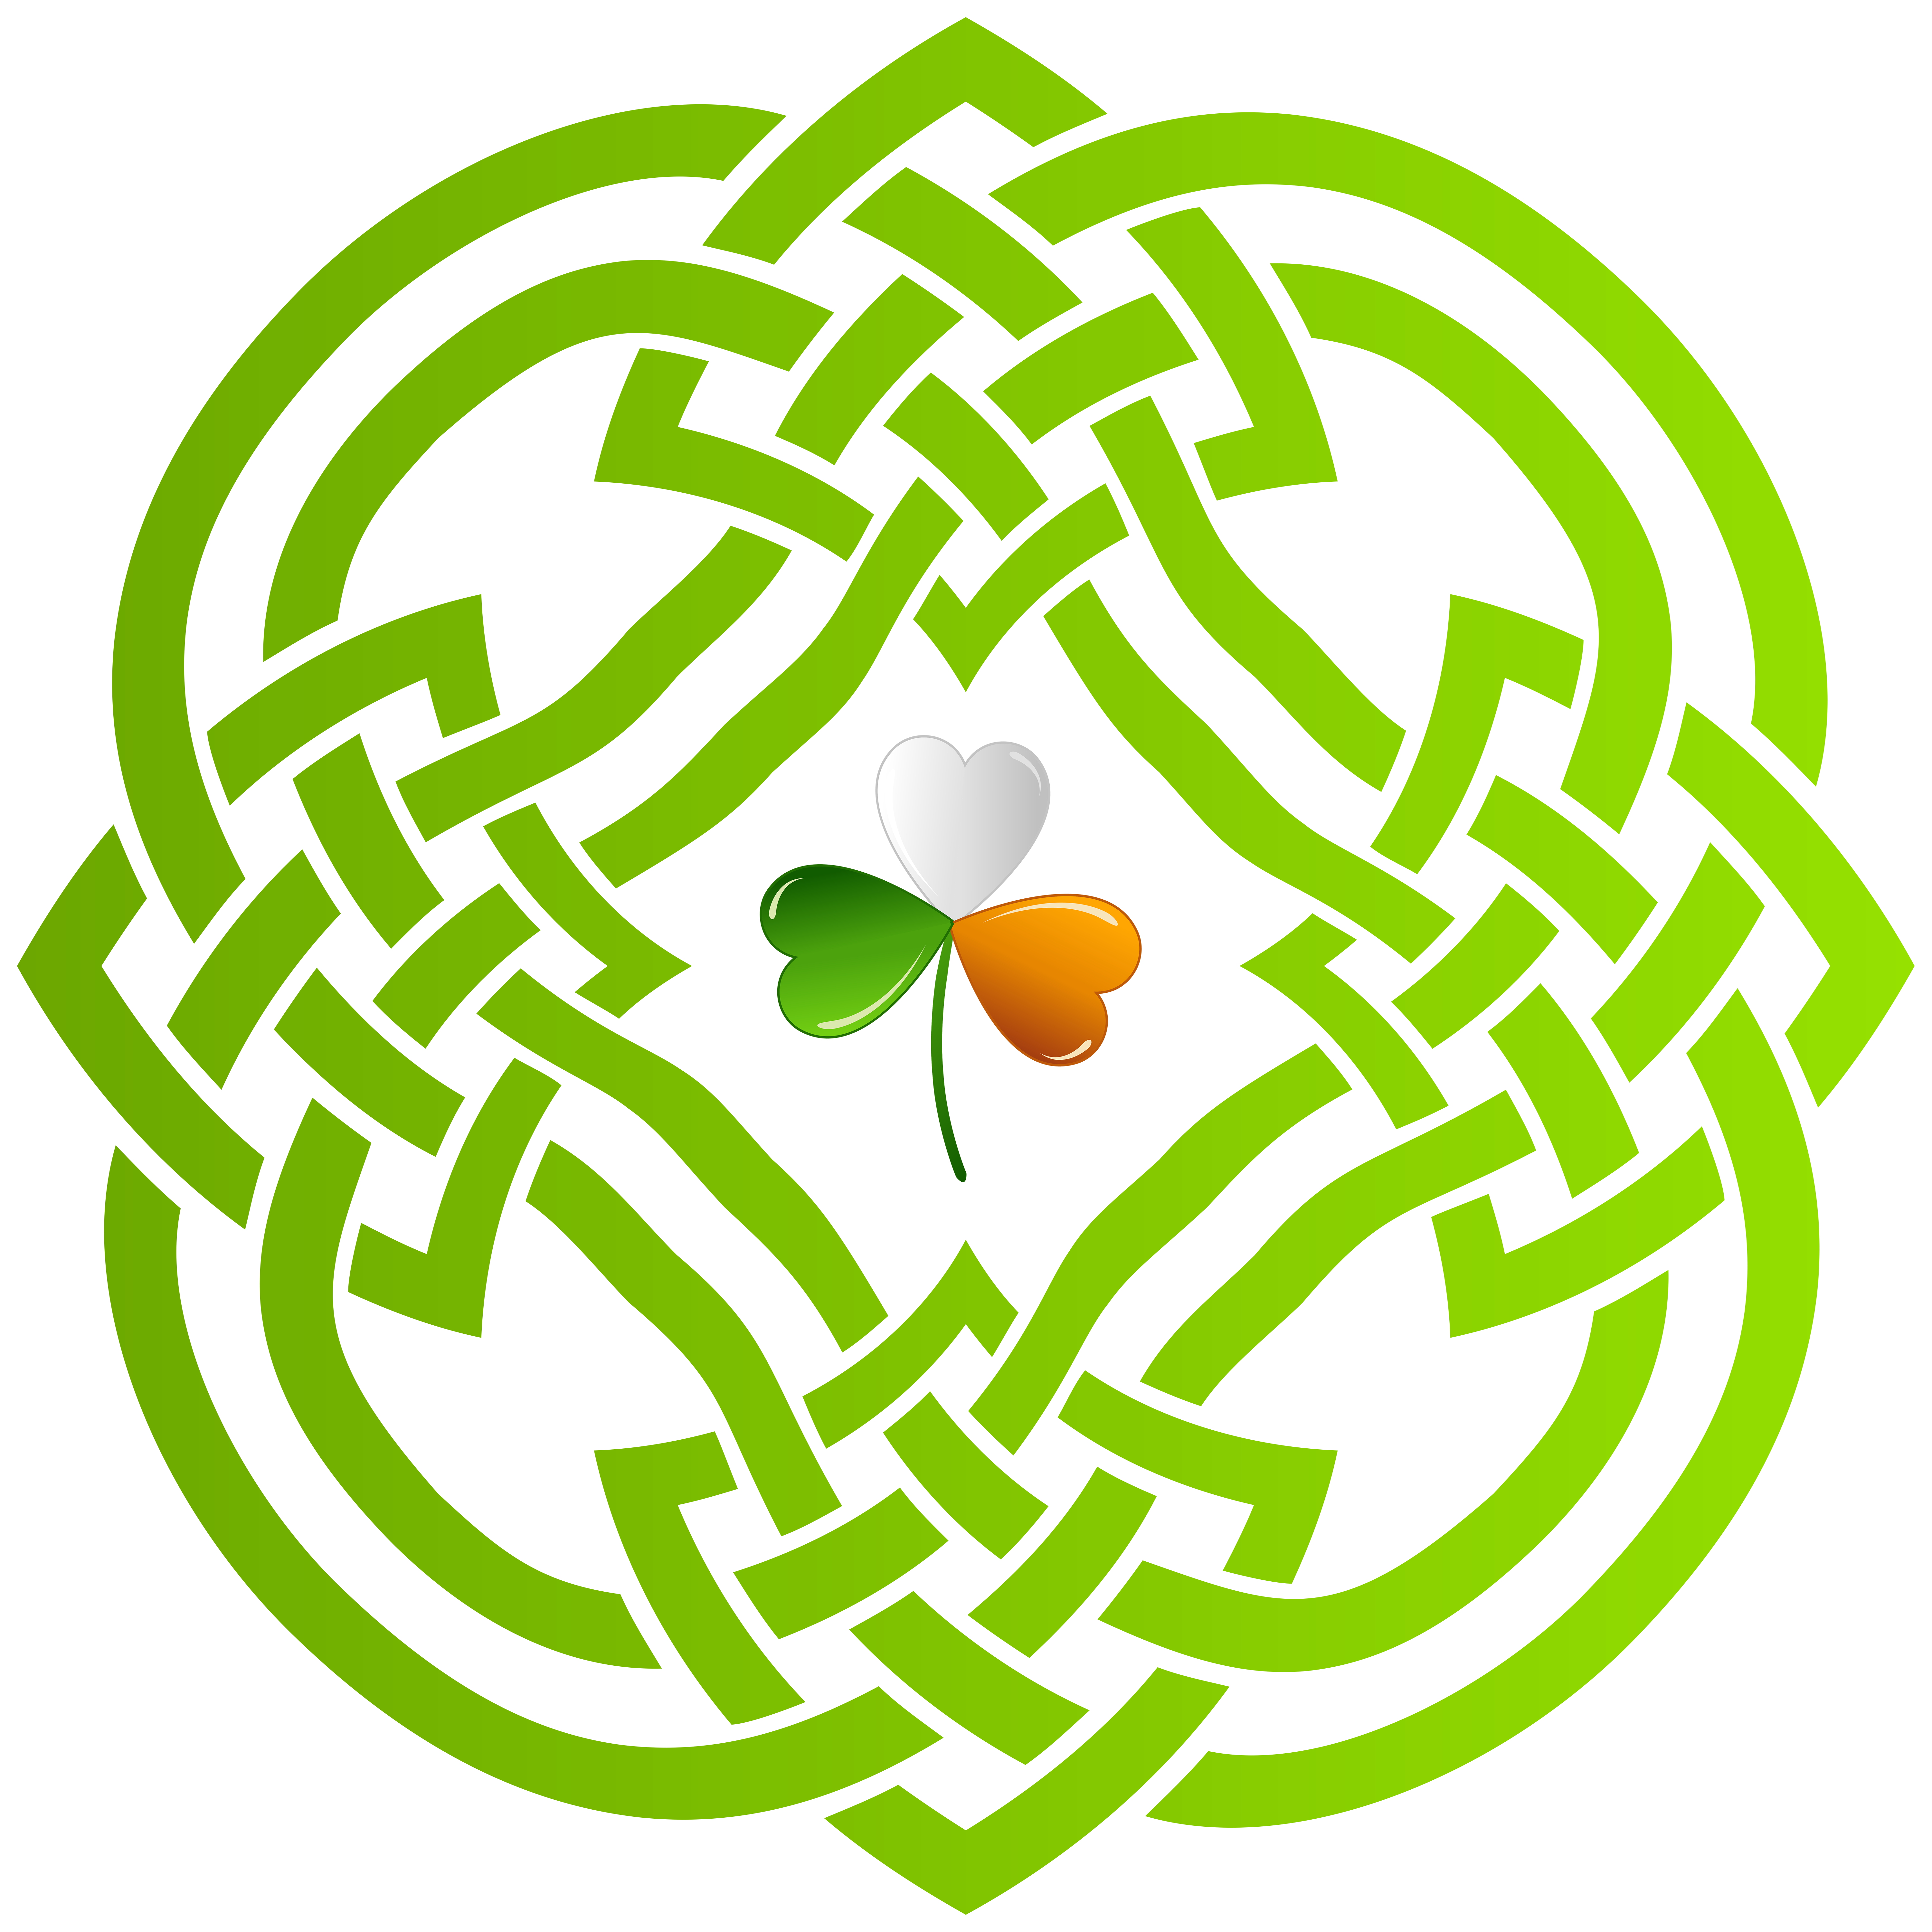 Celtic Knot and Irish Shamrock Transparent PNG Clip Art Image.